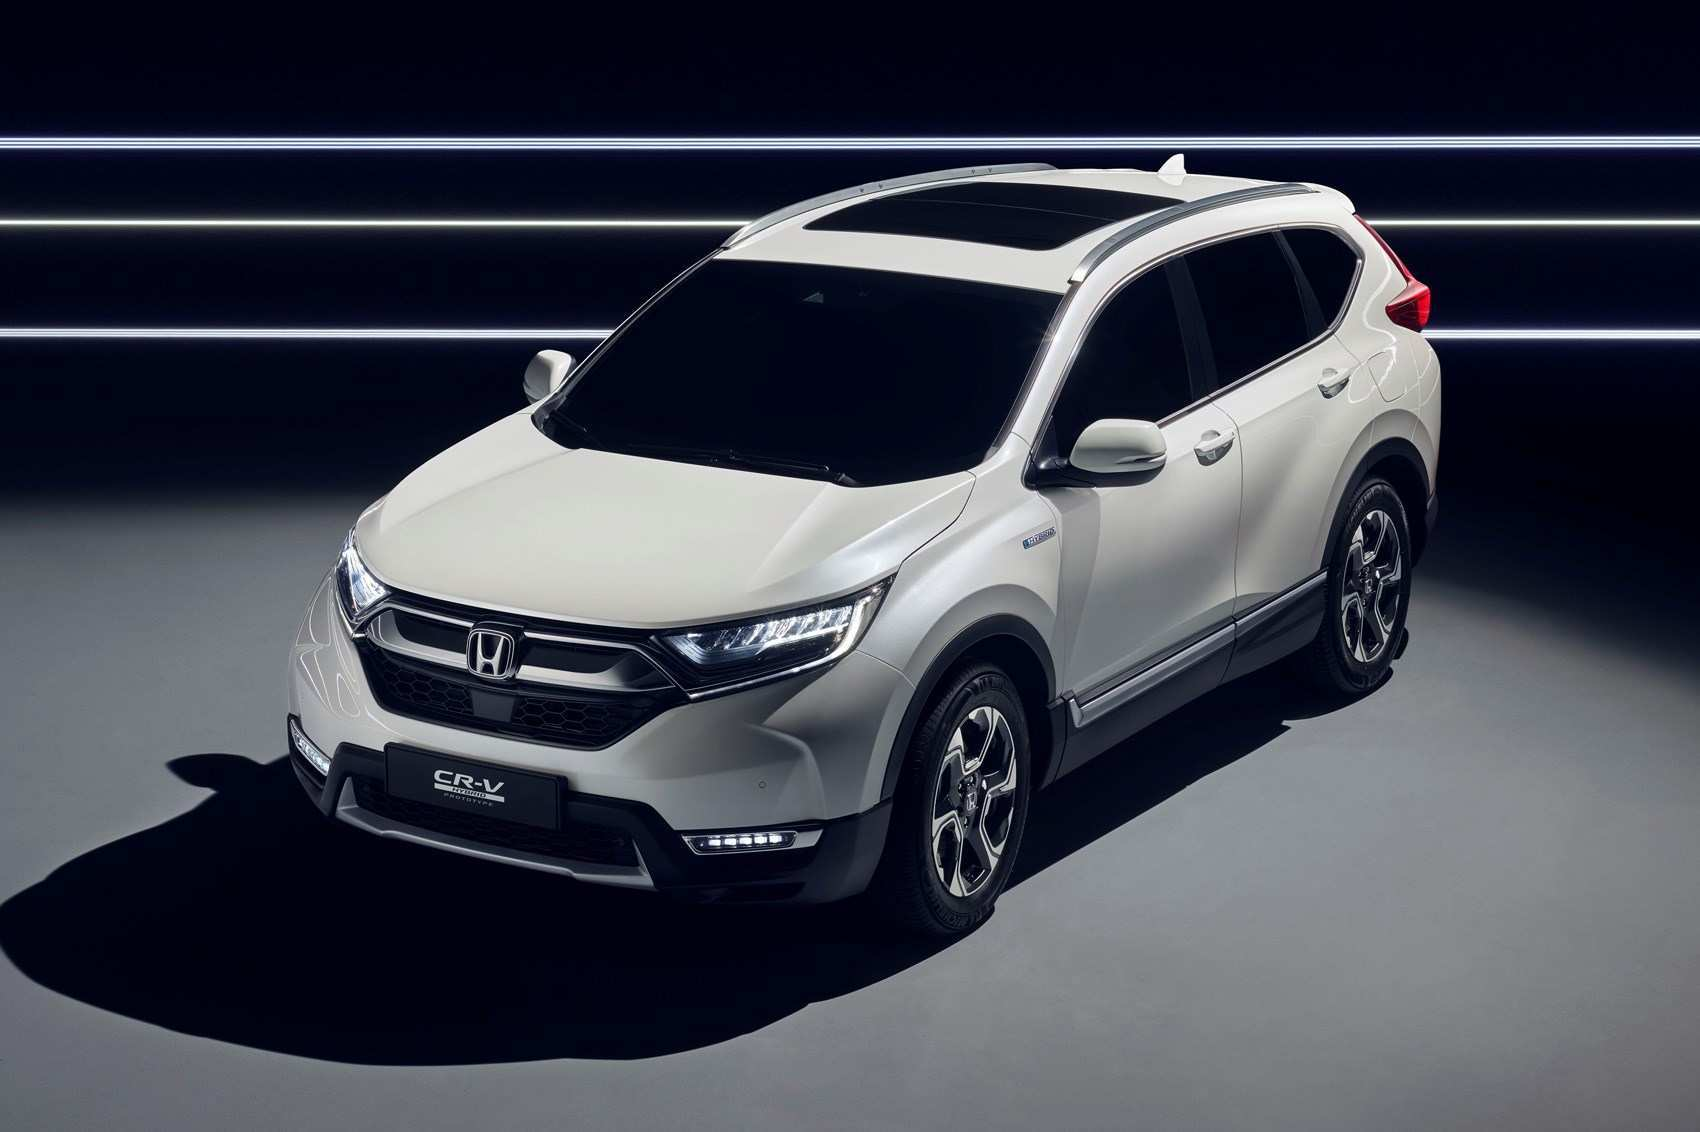 73 Concept of Honda Crv 2020 Ratings with Honda Crv 2020